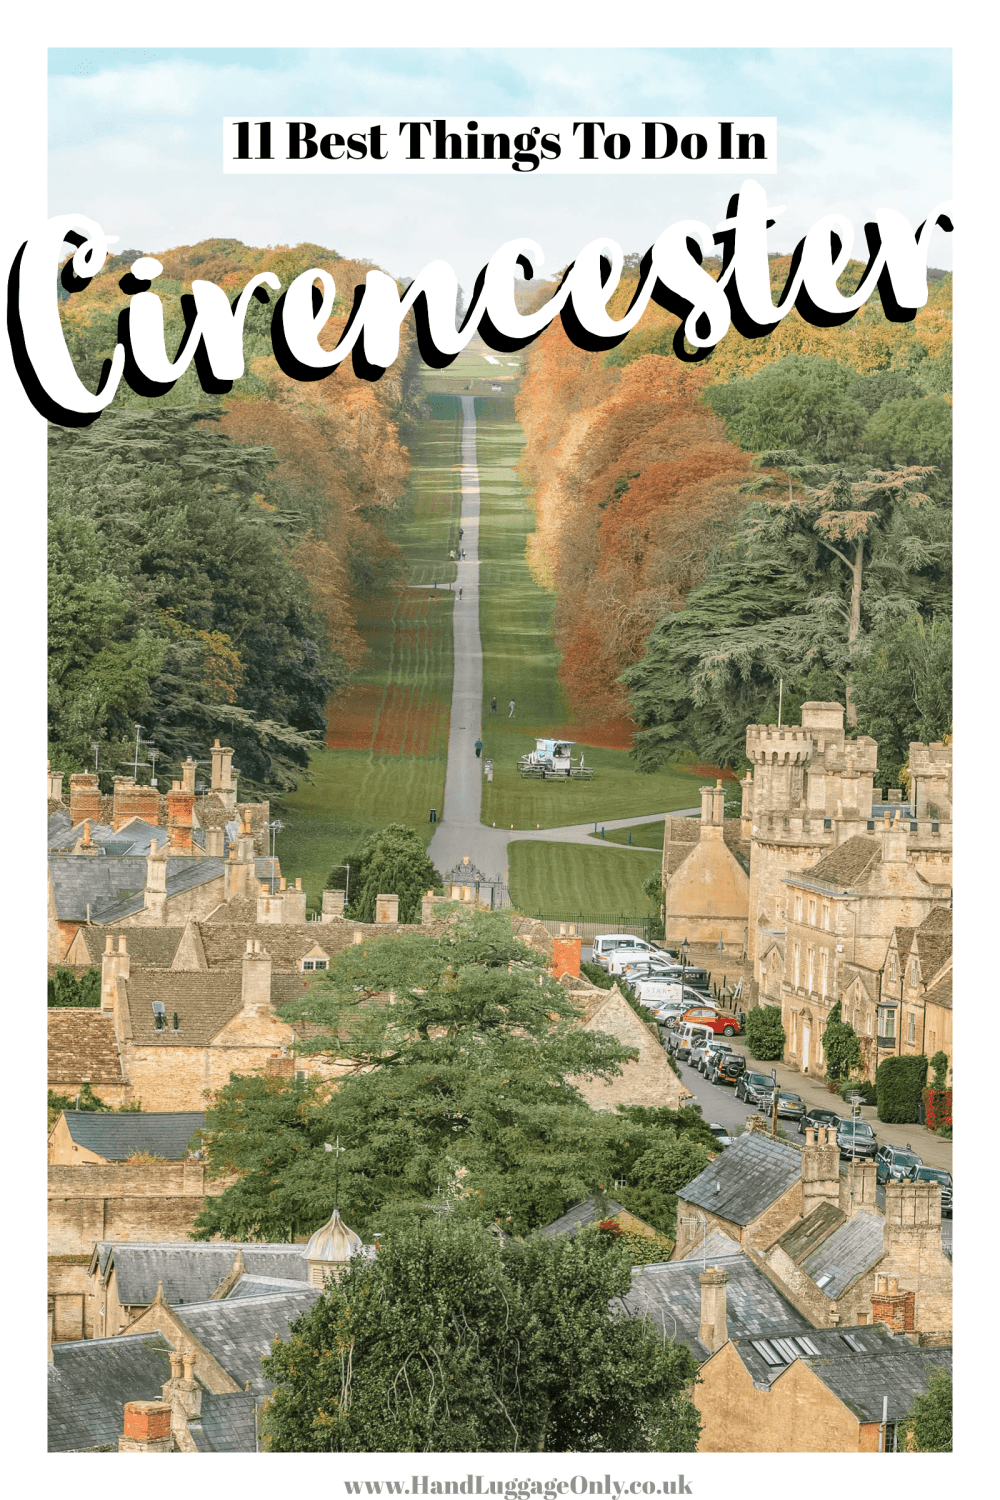 Best things to do in Cirencester (1)